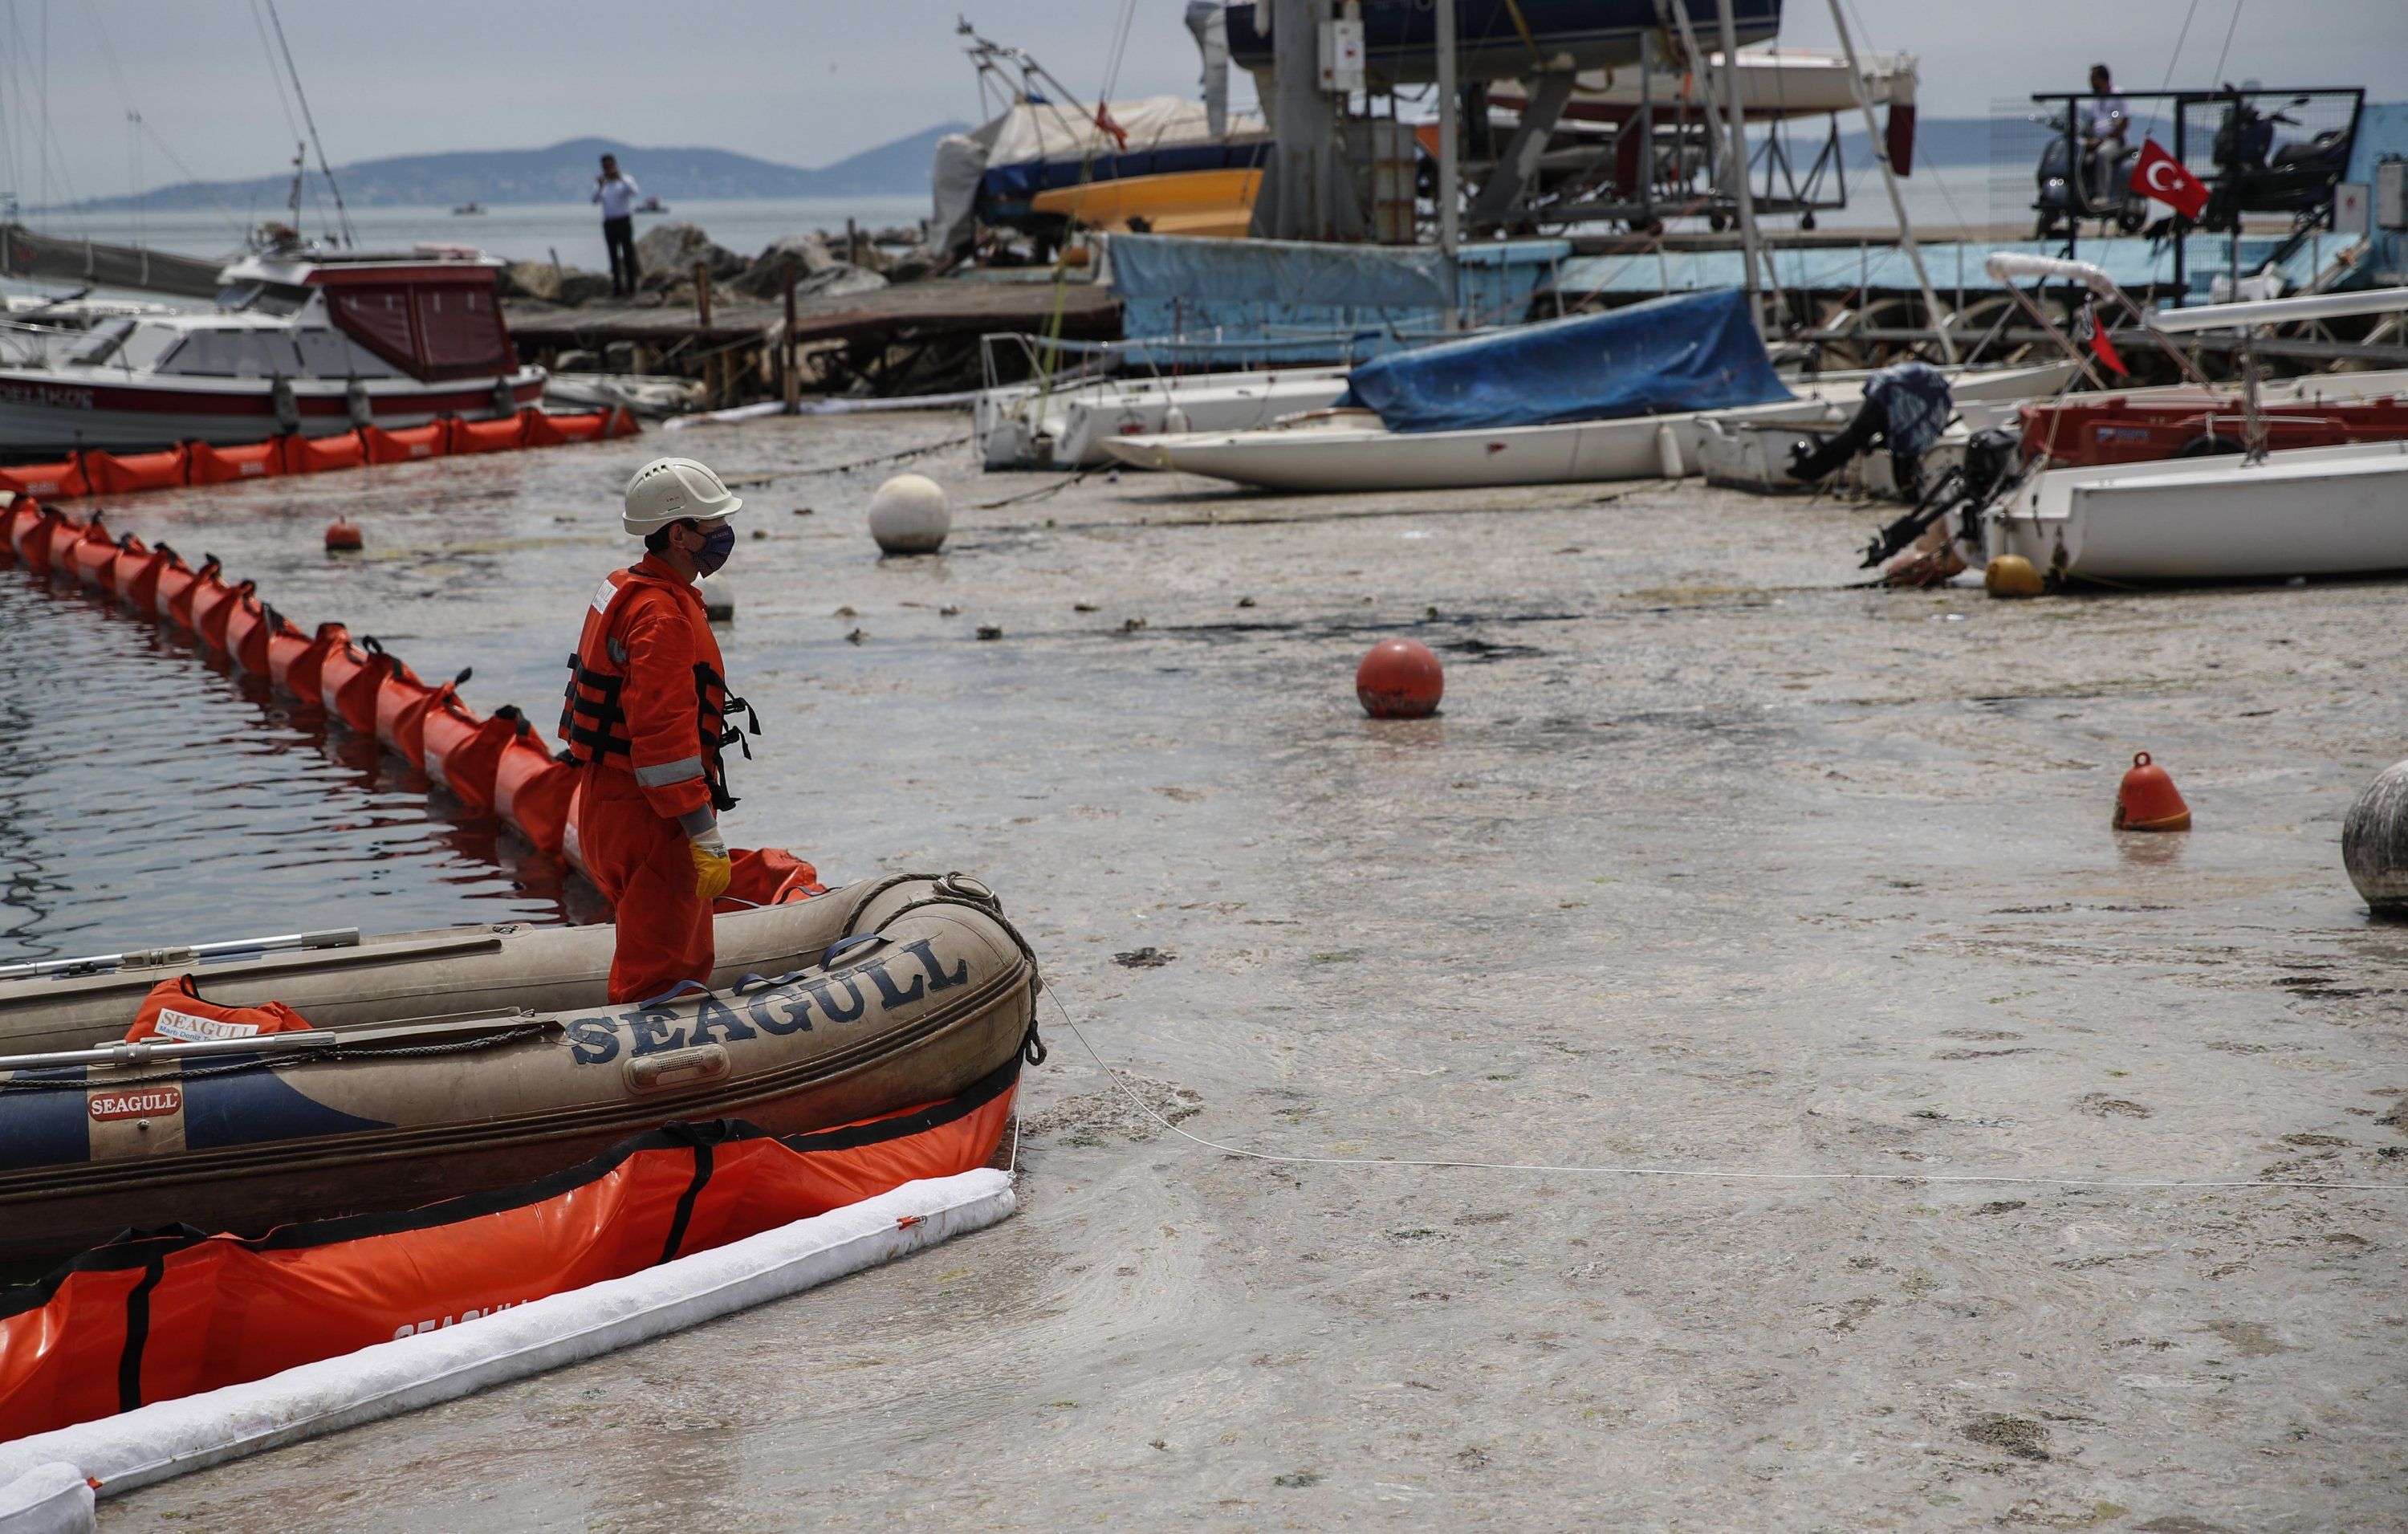 Experts work to clear a mass of marine mucilage from Marmara Sea at the Caddebostan shore, in Asian side of Istanbul, Turkey, June 8, 2021. (AP Photo)